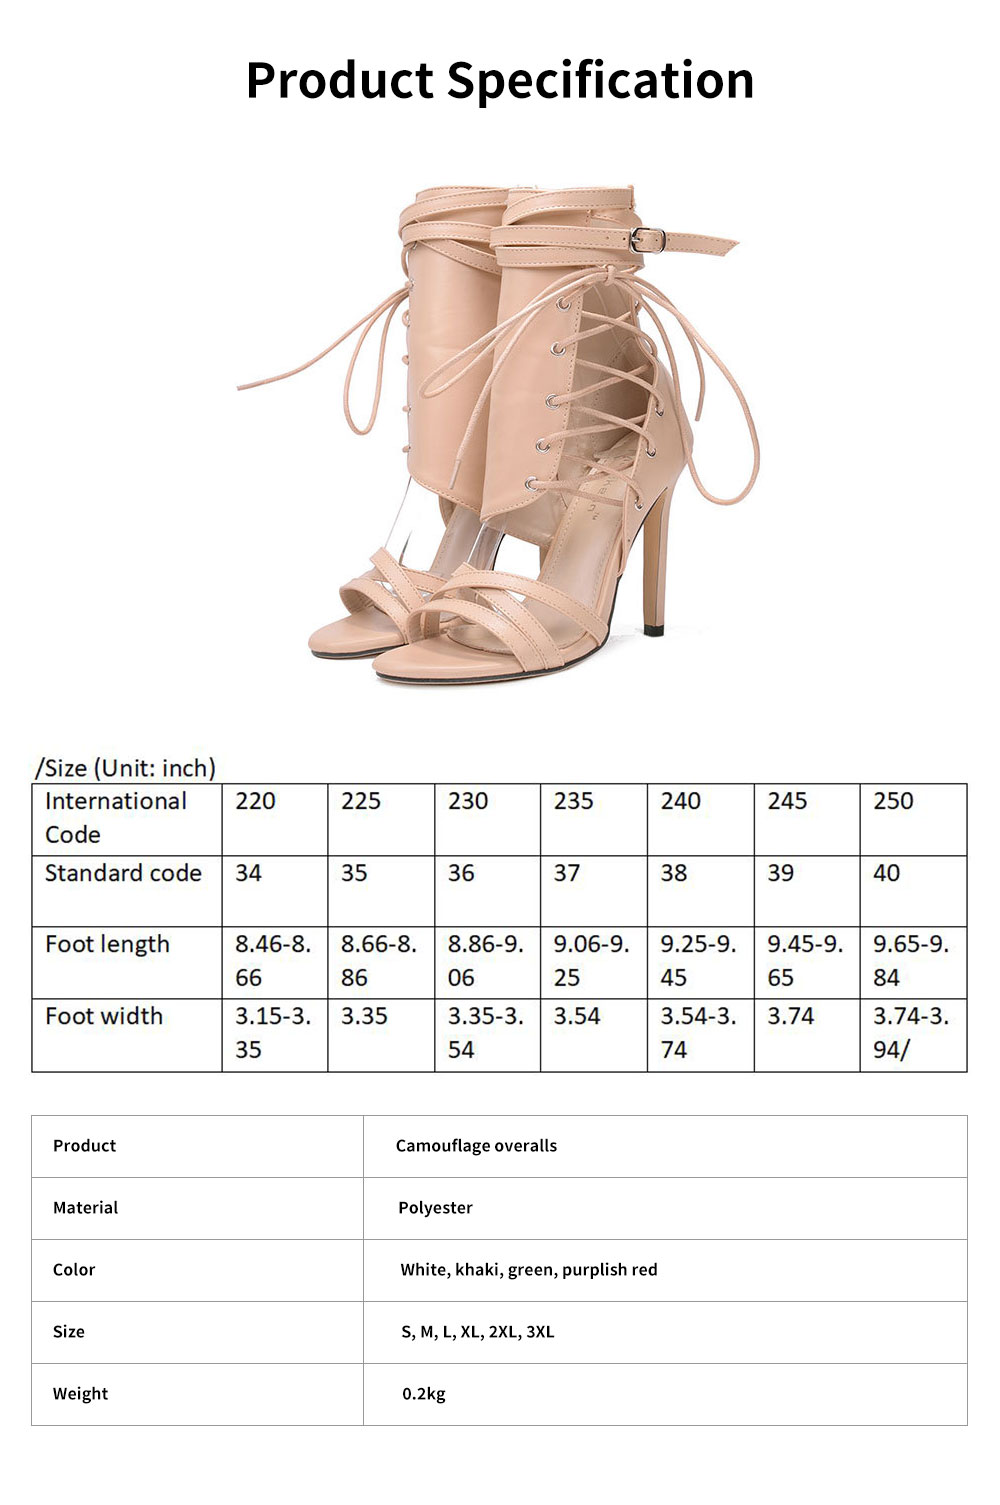 Large Strap Buckle High Heel Boots, Roman Style Fashionable Sexy Boots for Women 6